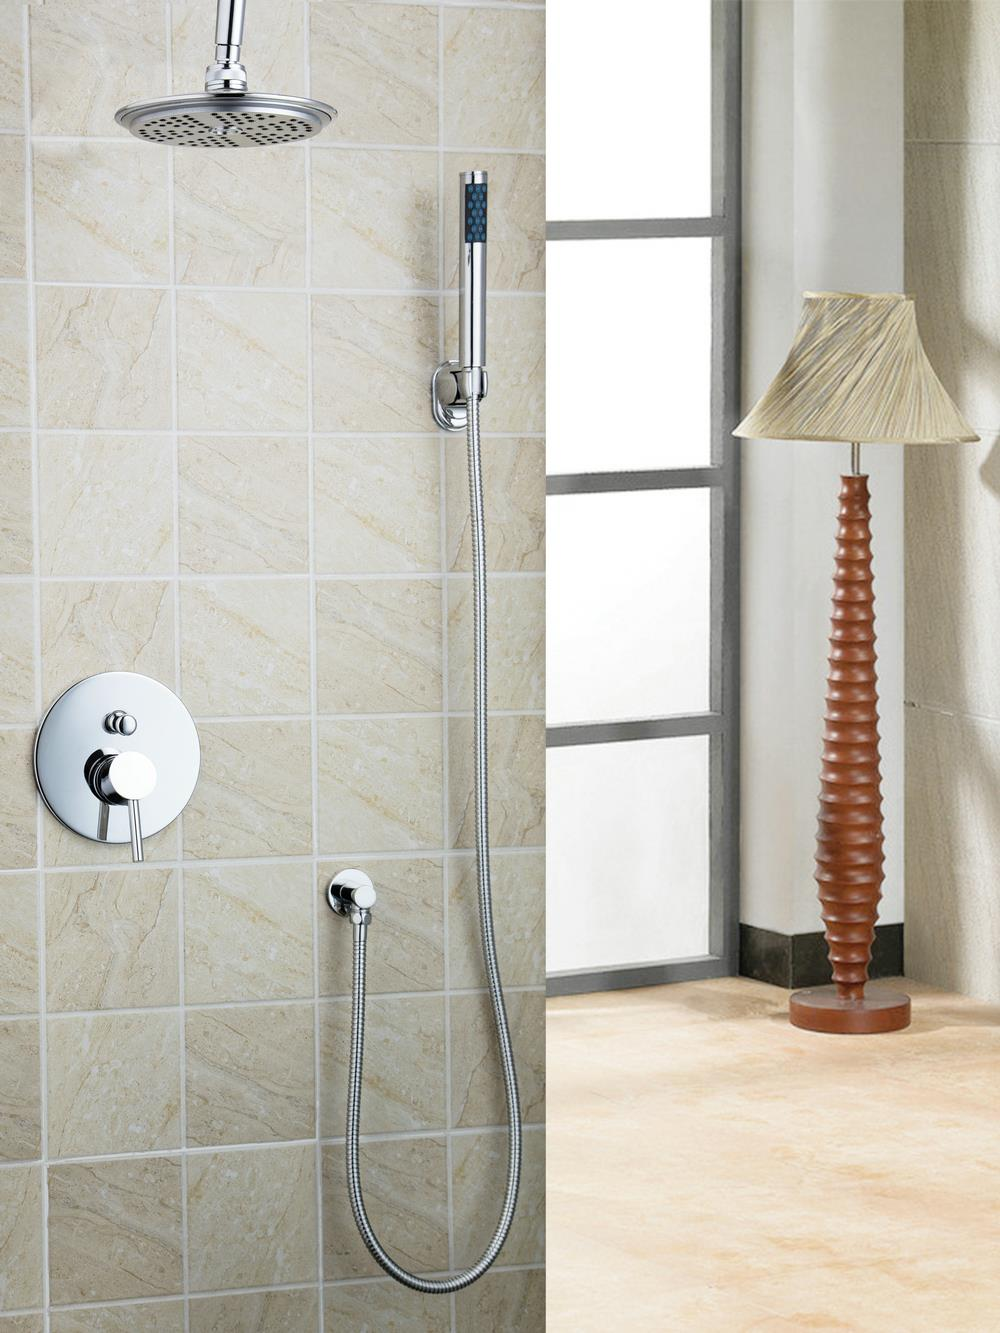 compare prices on modern bath faucets online shopping buy low hello modern bathroom rain shower banho de chuveiro set 8